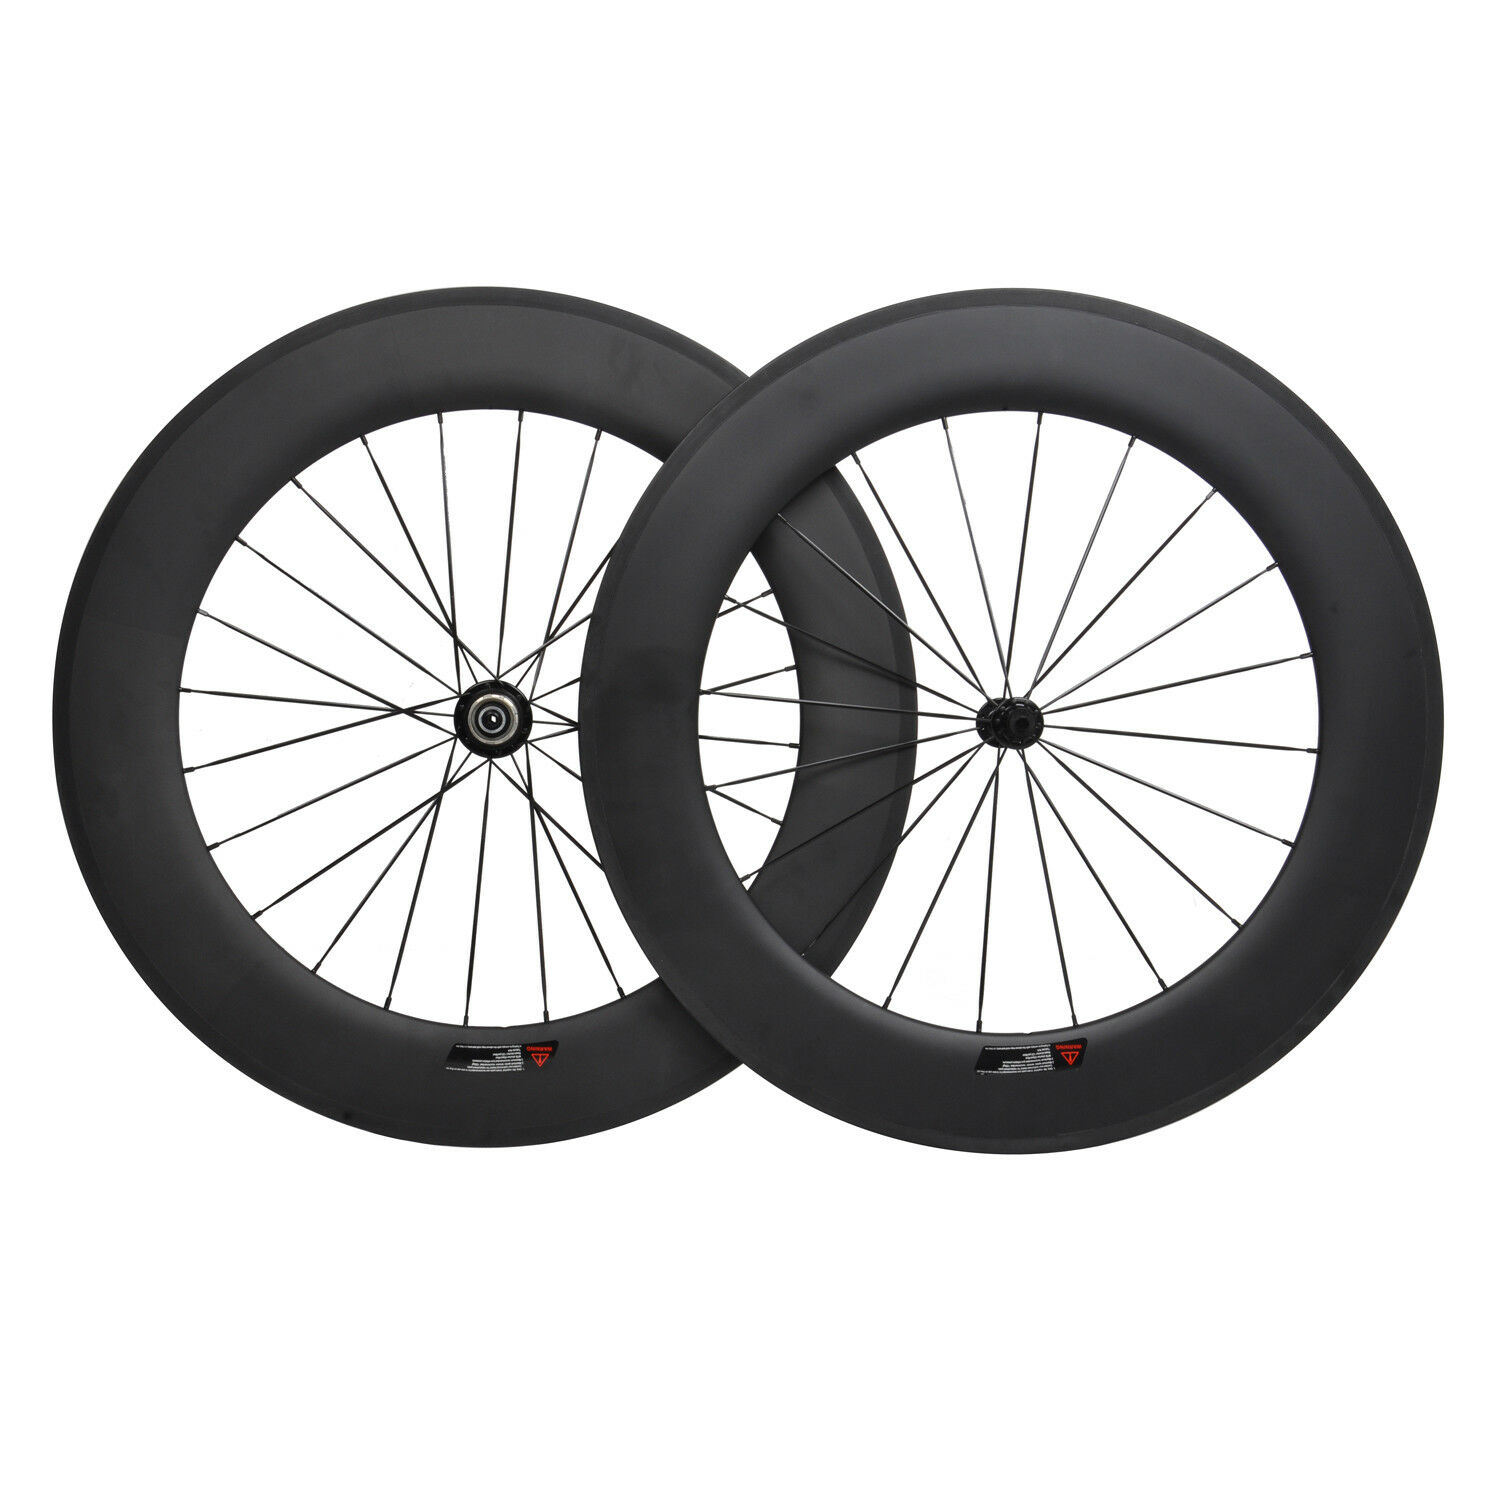 88mm Carbon Wheels Road Bike 700C Aero Clincher Wheelset UD Matt Powerway R13